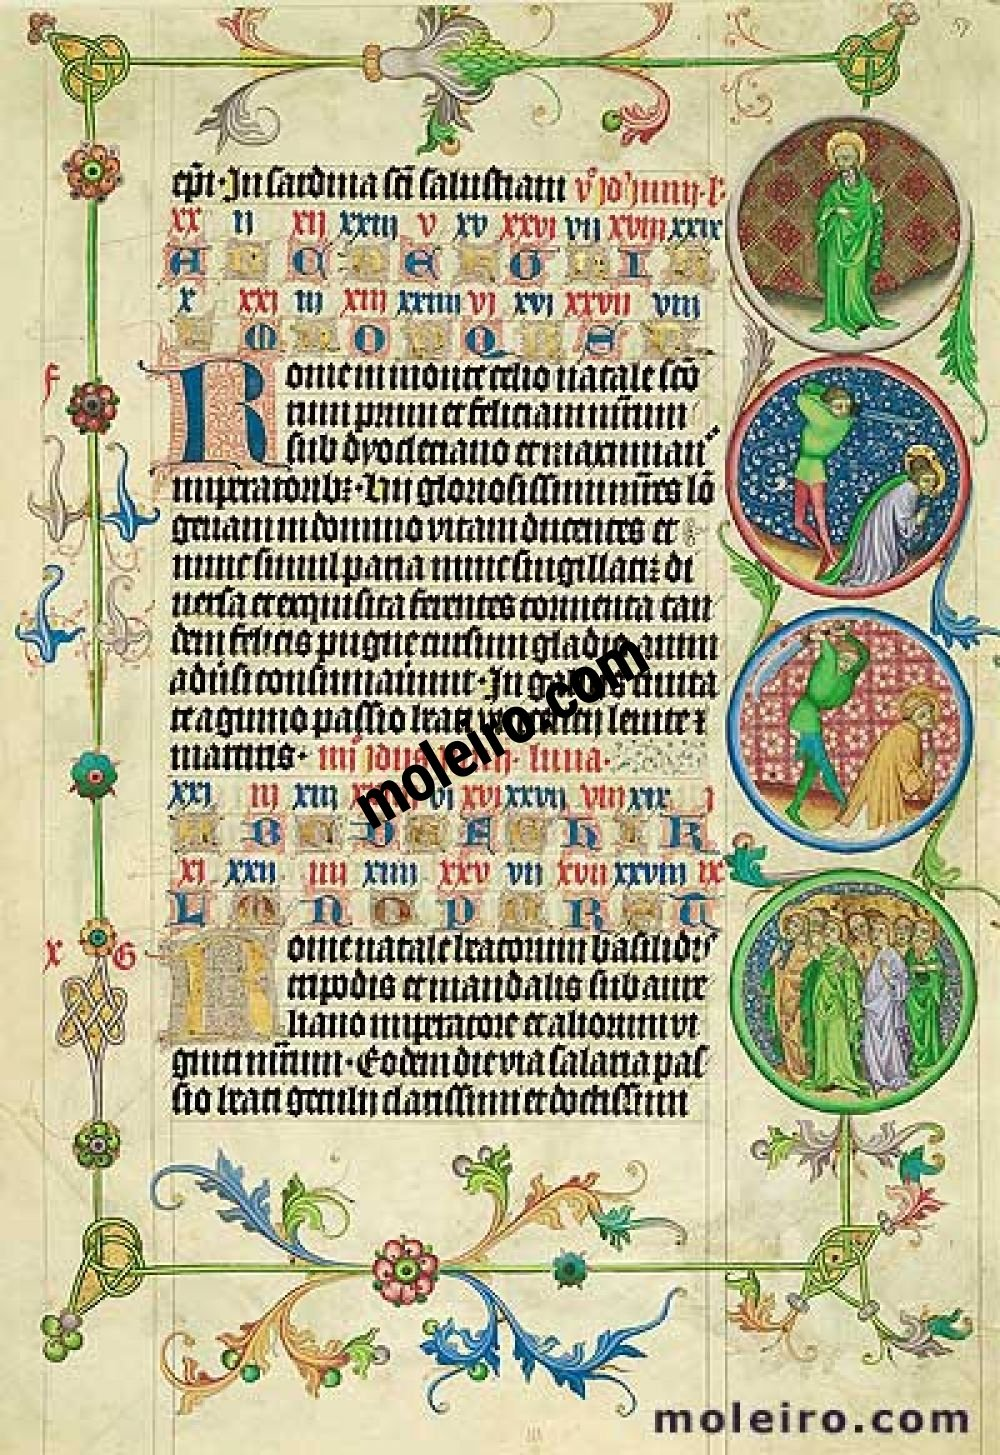 Martyrology of Usuard Images of the Medallions, 9-10th June, folio 59r